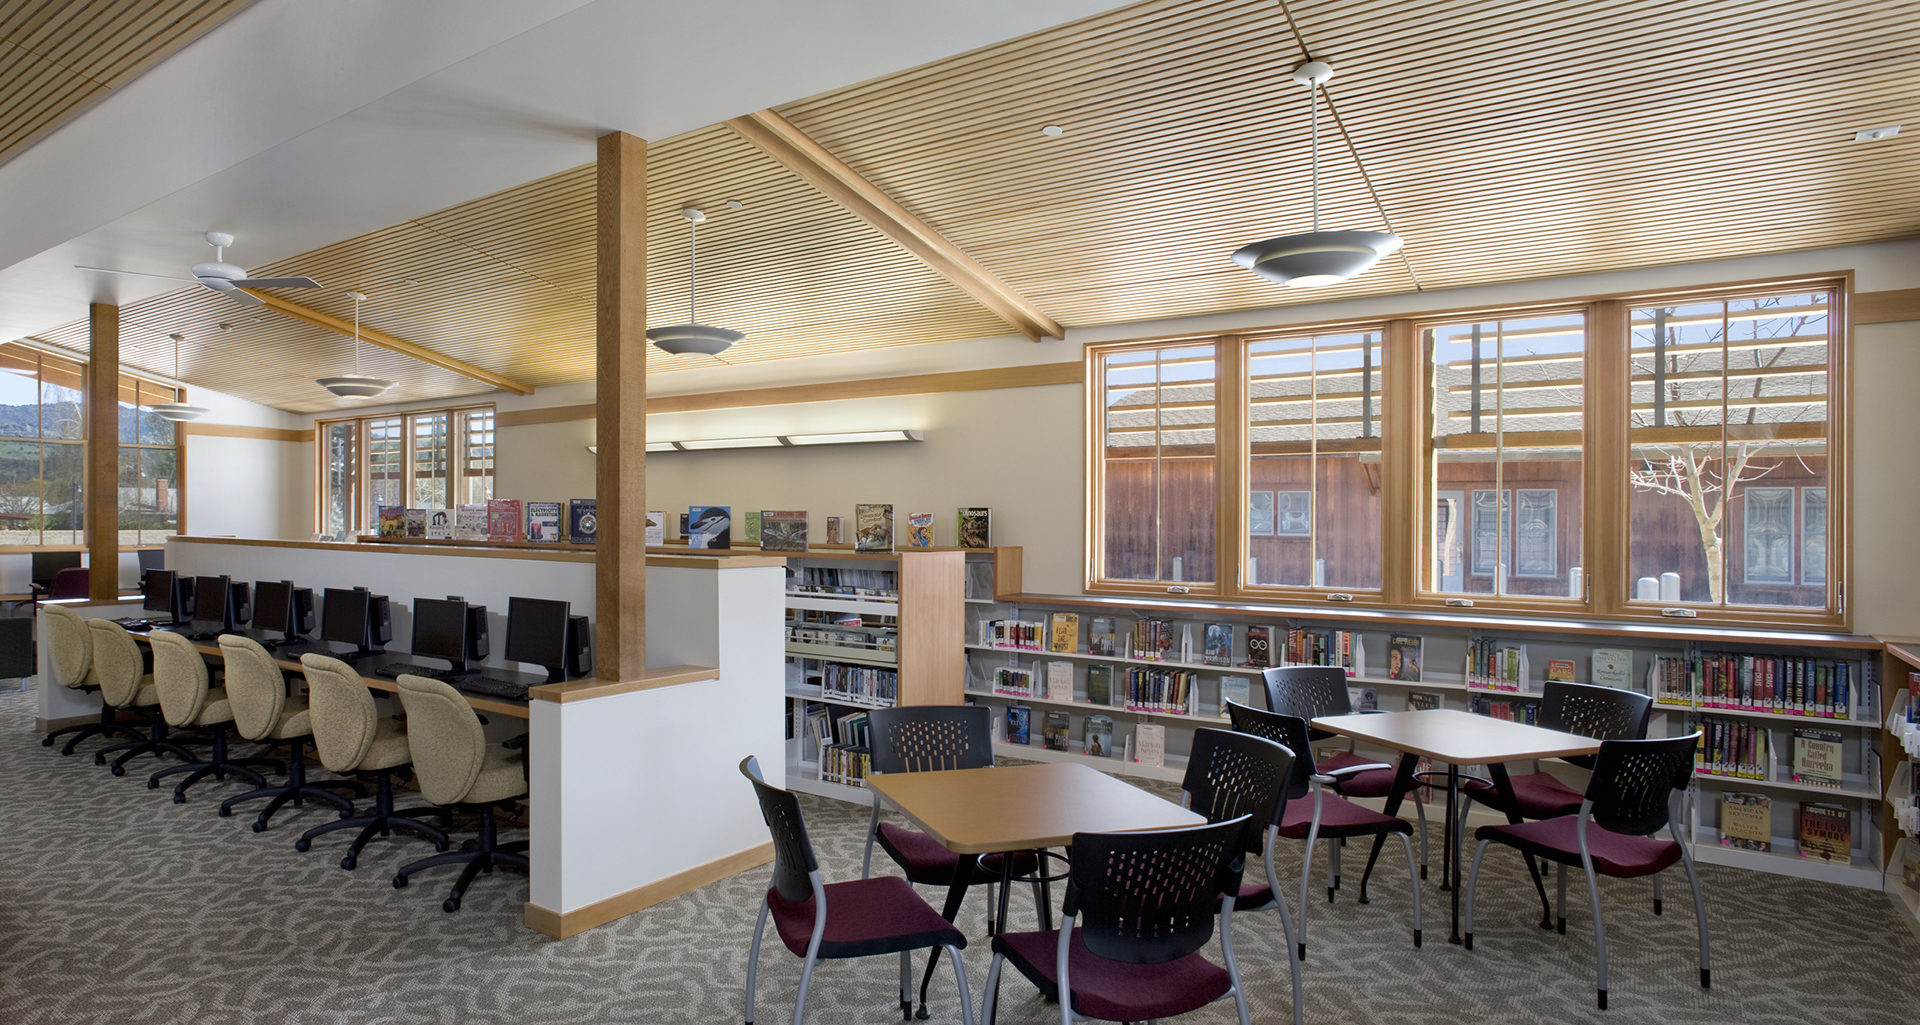 Yountville Town Center & Library | Photos by David Wakely